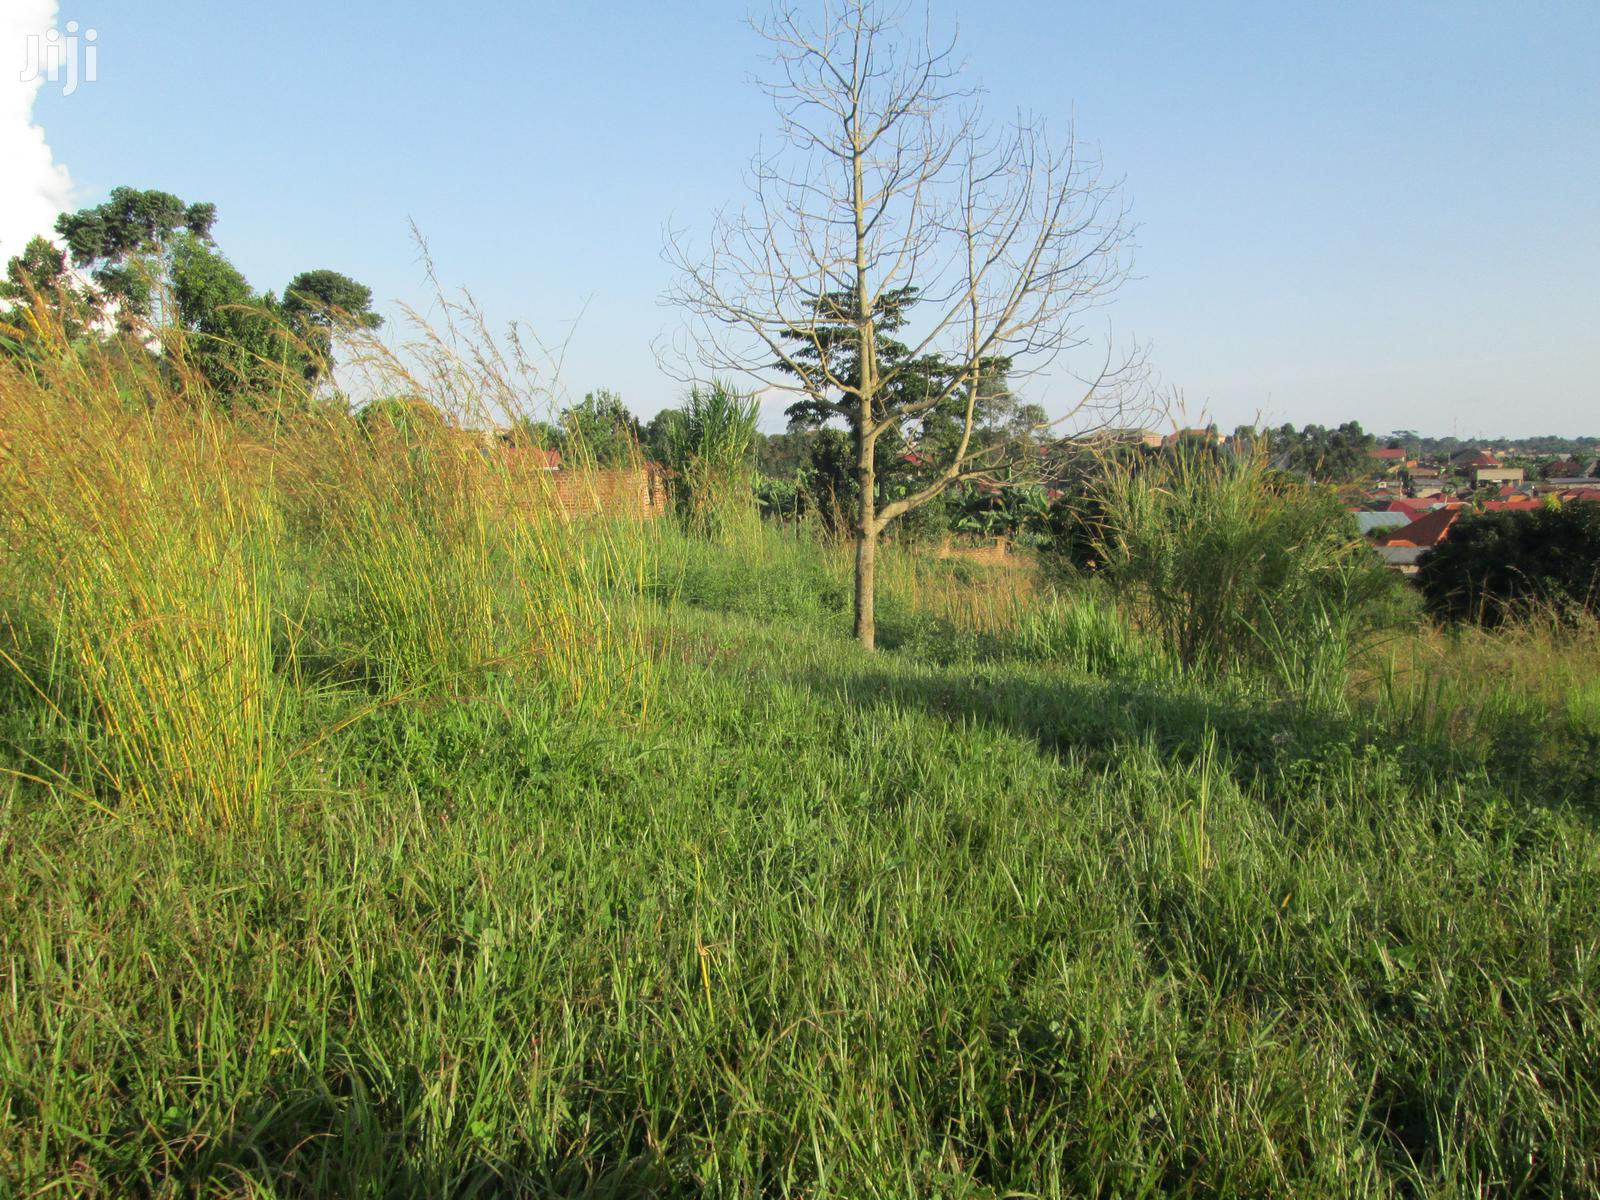 Cheap Land In Kirinya Bweyogerere Along Bukasa Road For Sale | Land & Plots For Sale for sale in Kampala, Central Region, Uganda